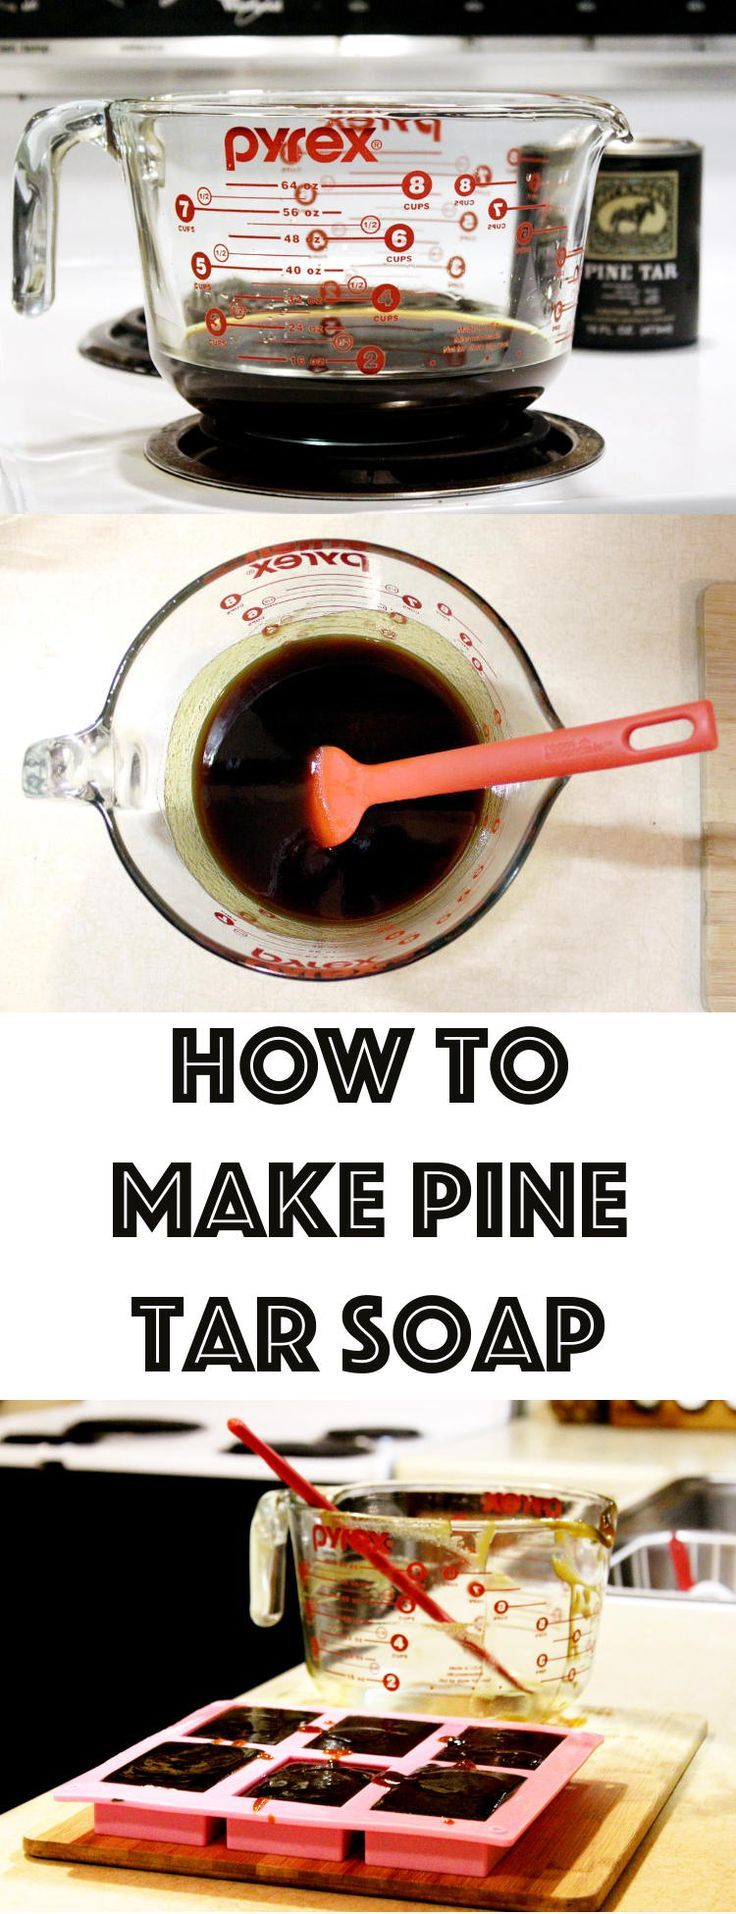 Pine Tar Soap Recipe for Psoriasis, Eczema & Other Problem